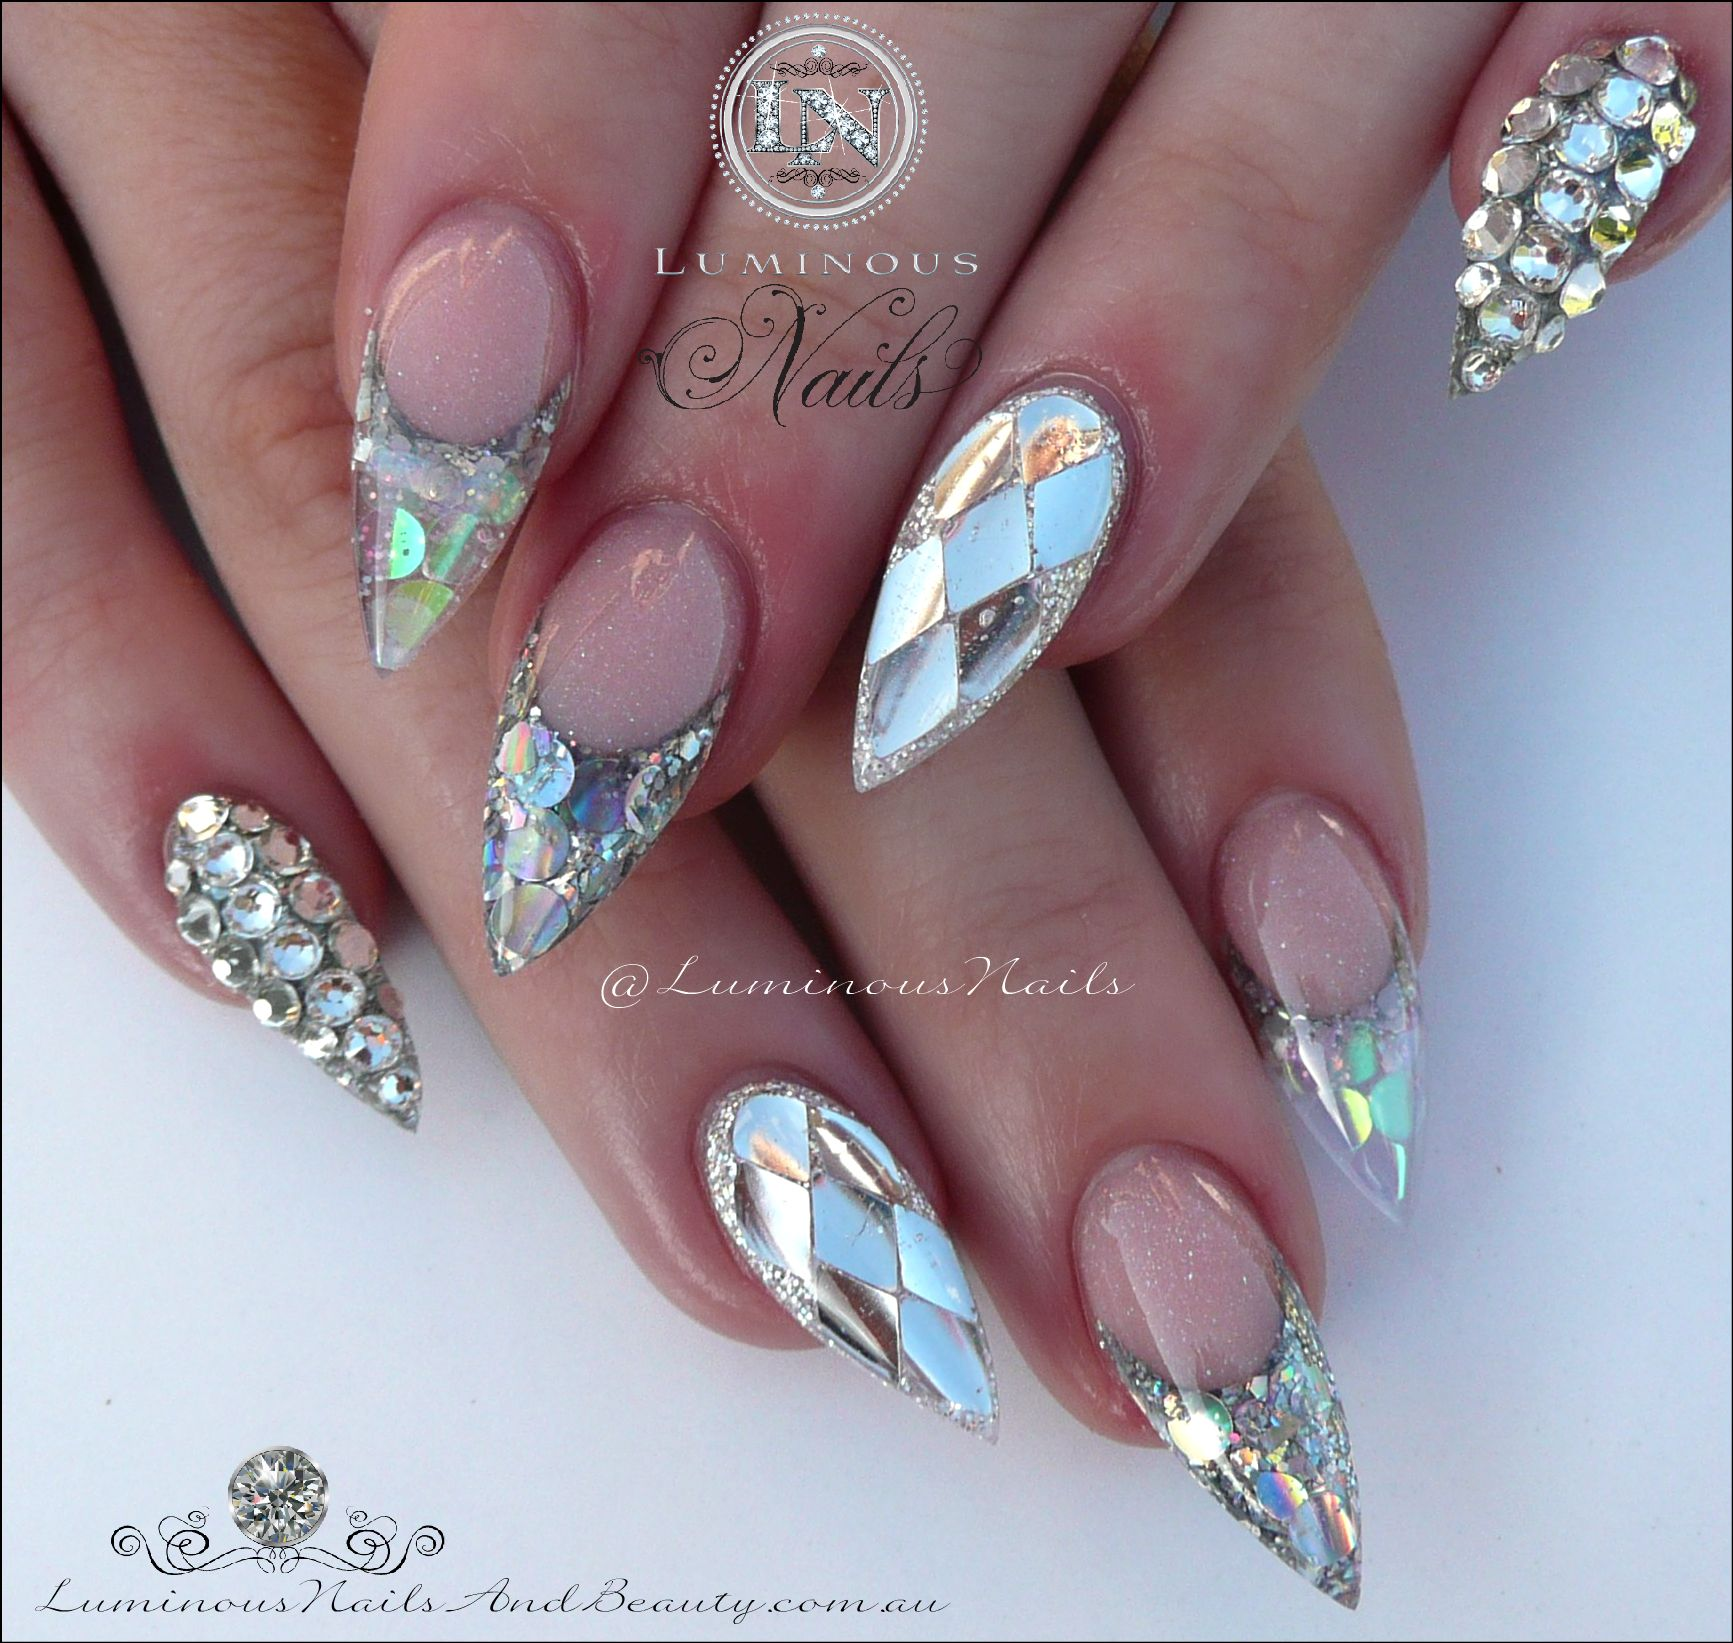 Luminous nails and beauty gold coast queensland acrylic luminous nails beauty offer the highest level of beauty services including beautifully sculptured acrylic or gel nail enhancements spray tanning prinsesfo Images